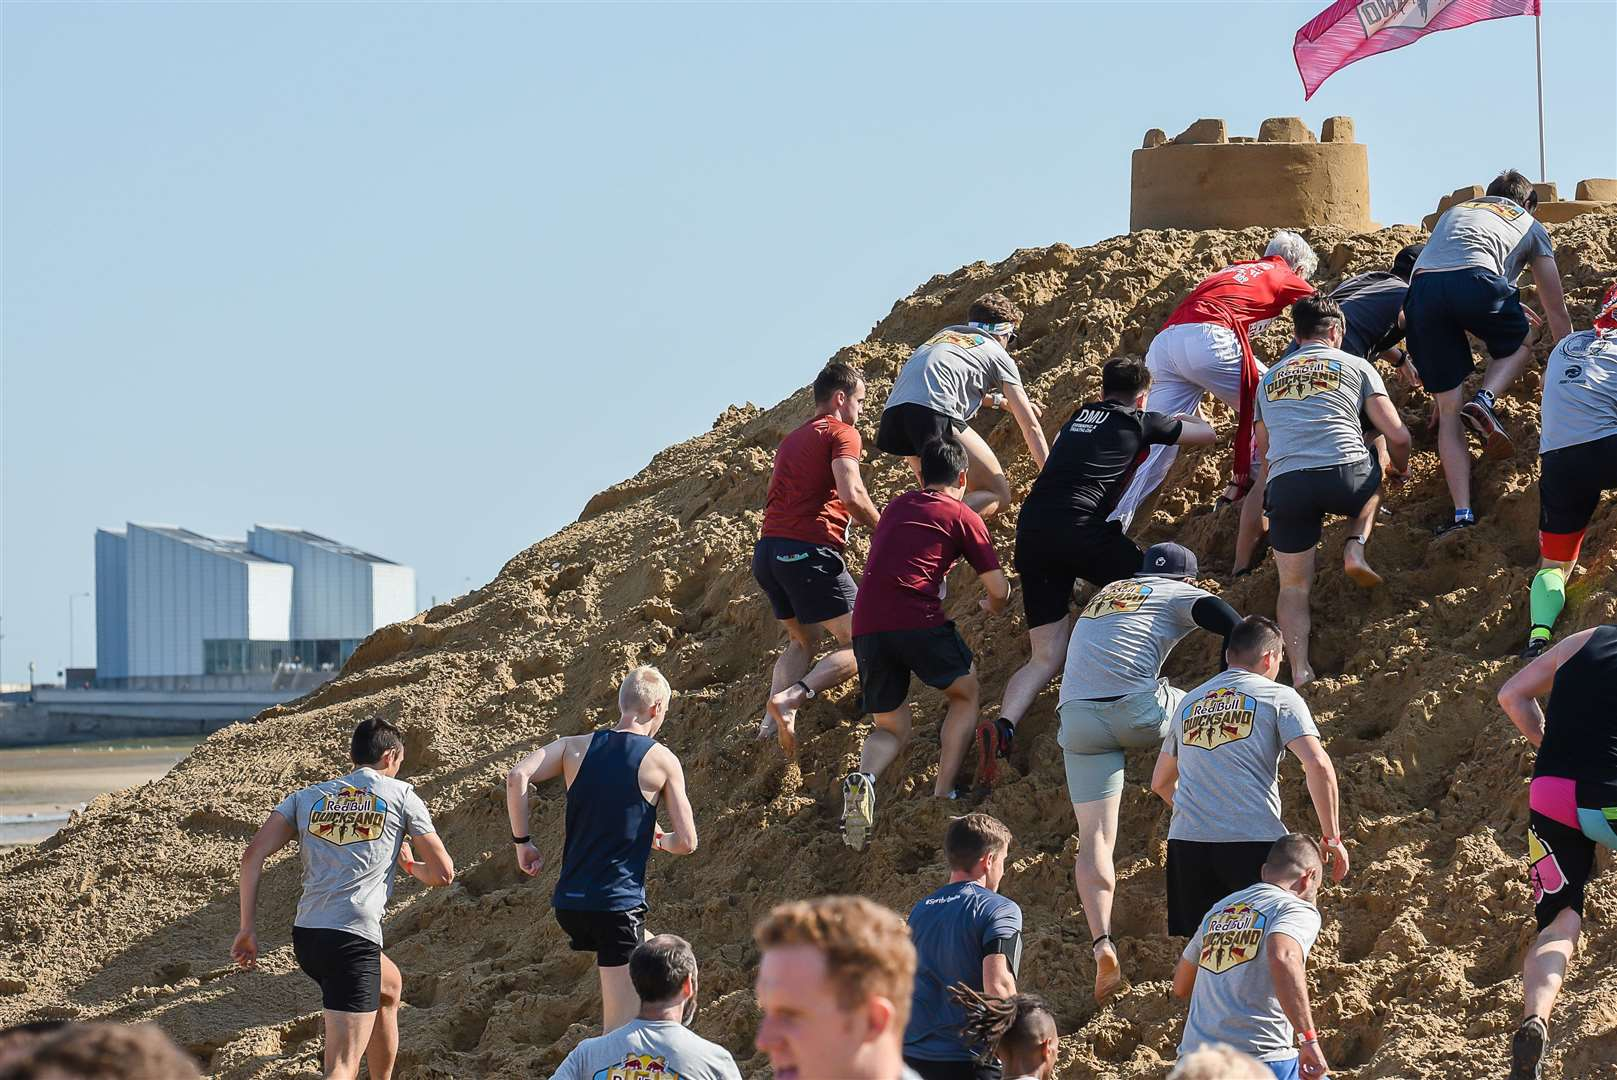 The race is described as the 'world's most gruelling mile race'